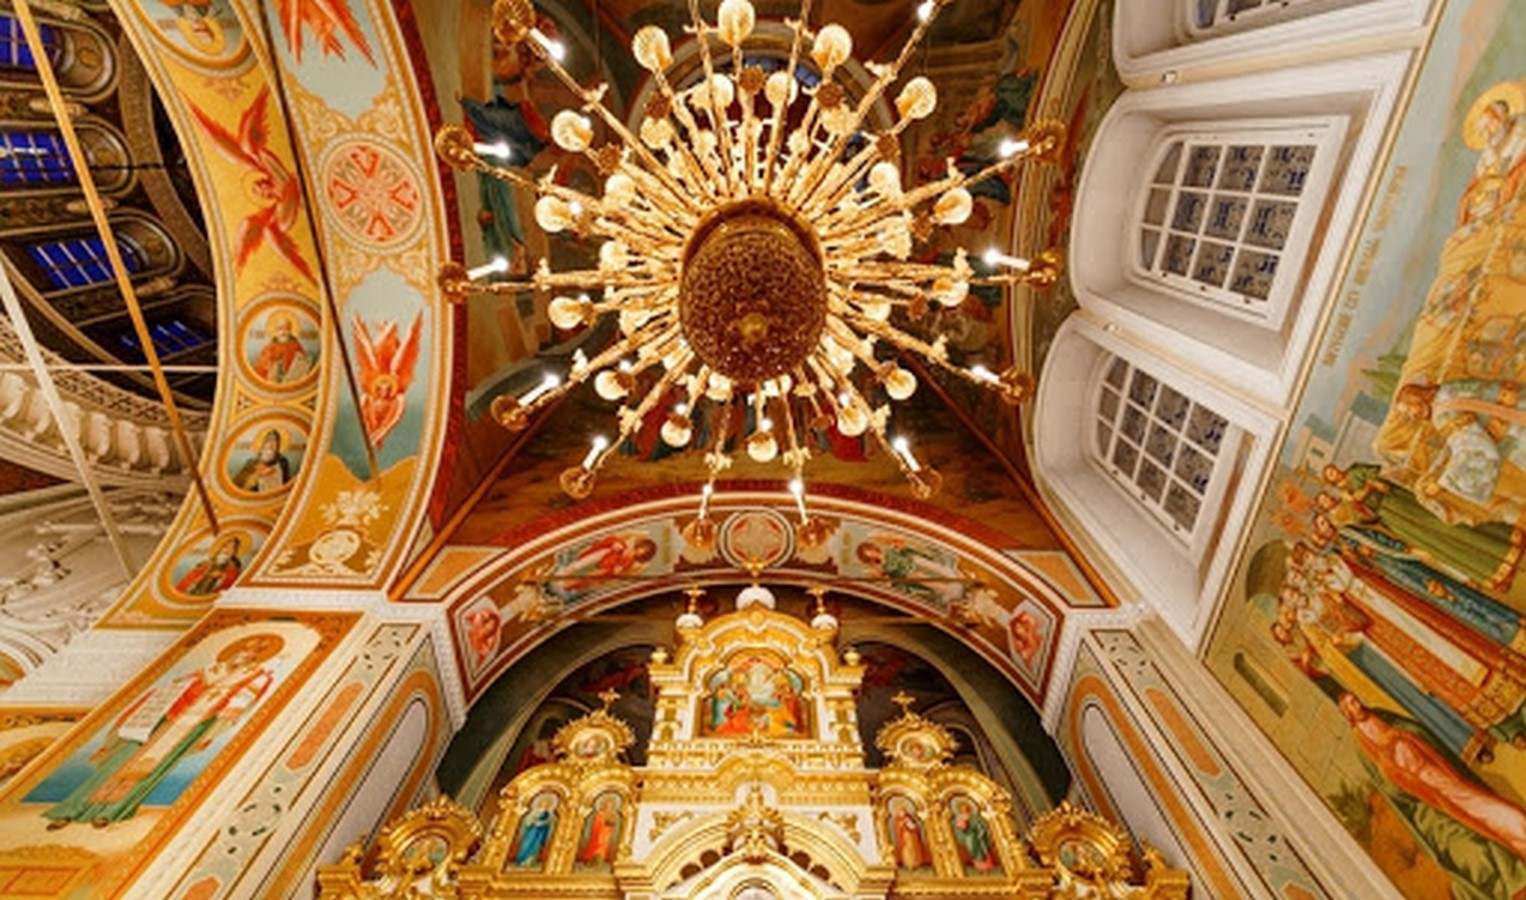 10 Reasons why Architects should visit Russia - Sheet41